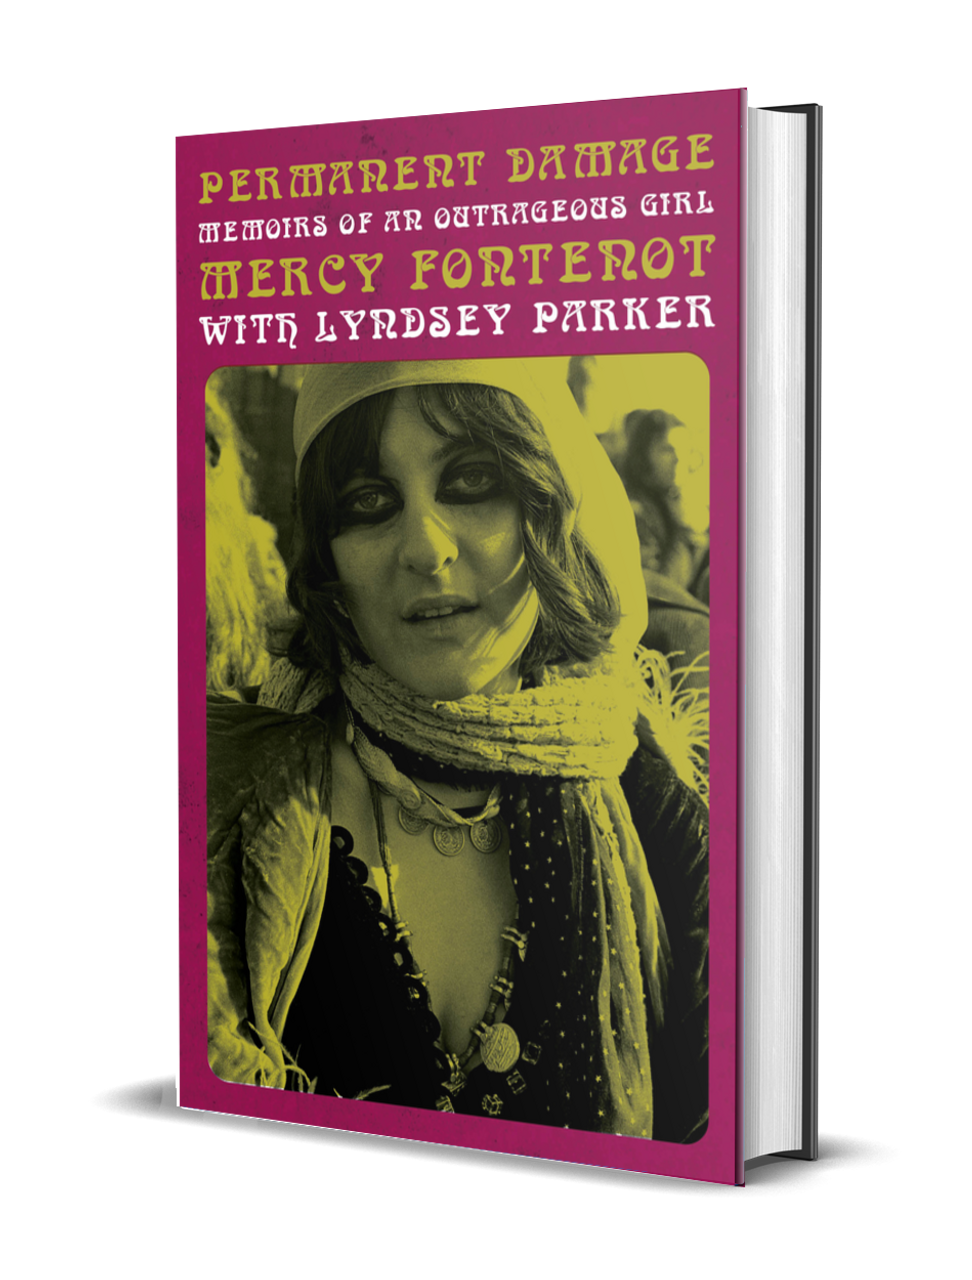 Permanent Damage Memoirs Of An Outrageous Girl By Mercy Fontenot And Lyndsey Parker